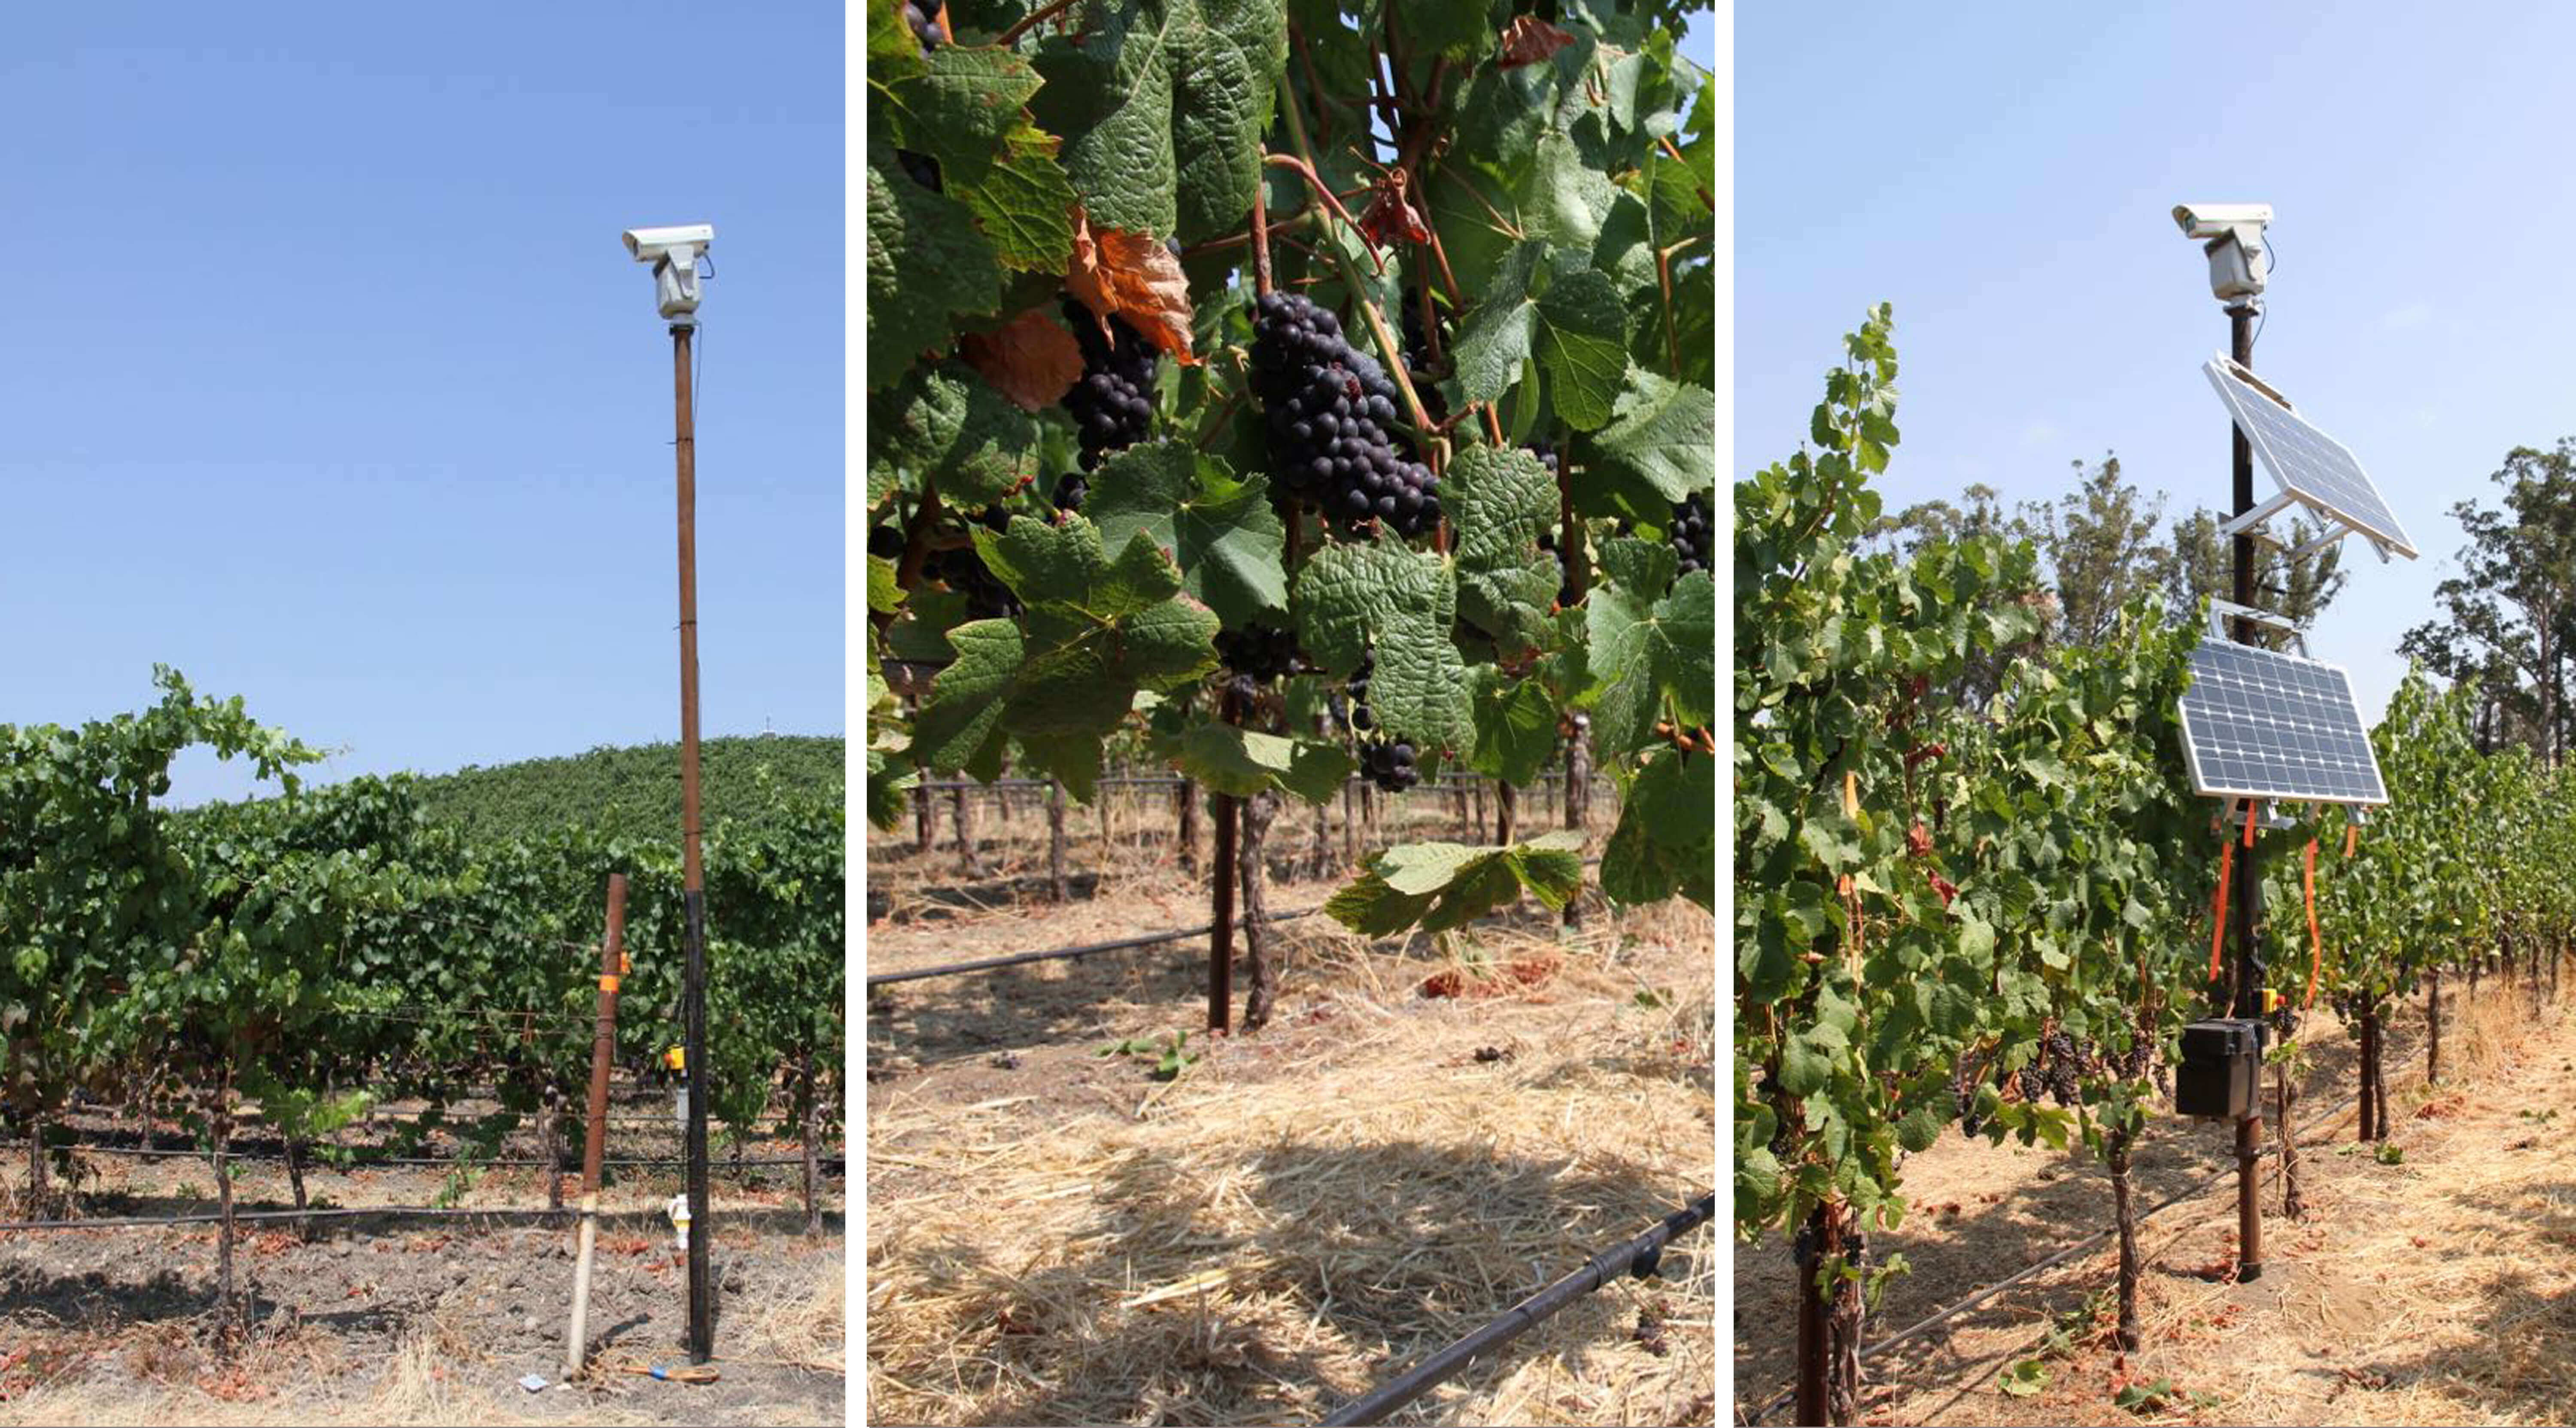 Vineyards Use Innovative Laser Bird Repellent to Protect Wine Grapes in New Zealand